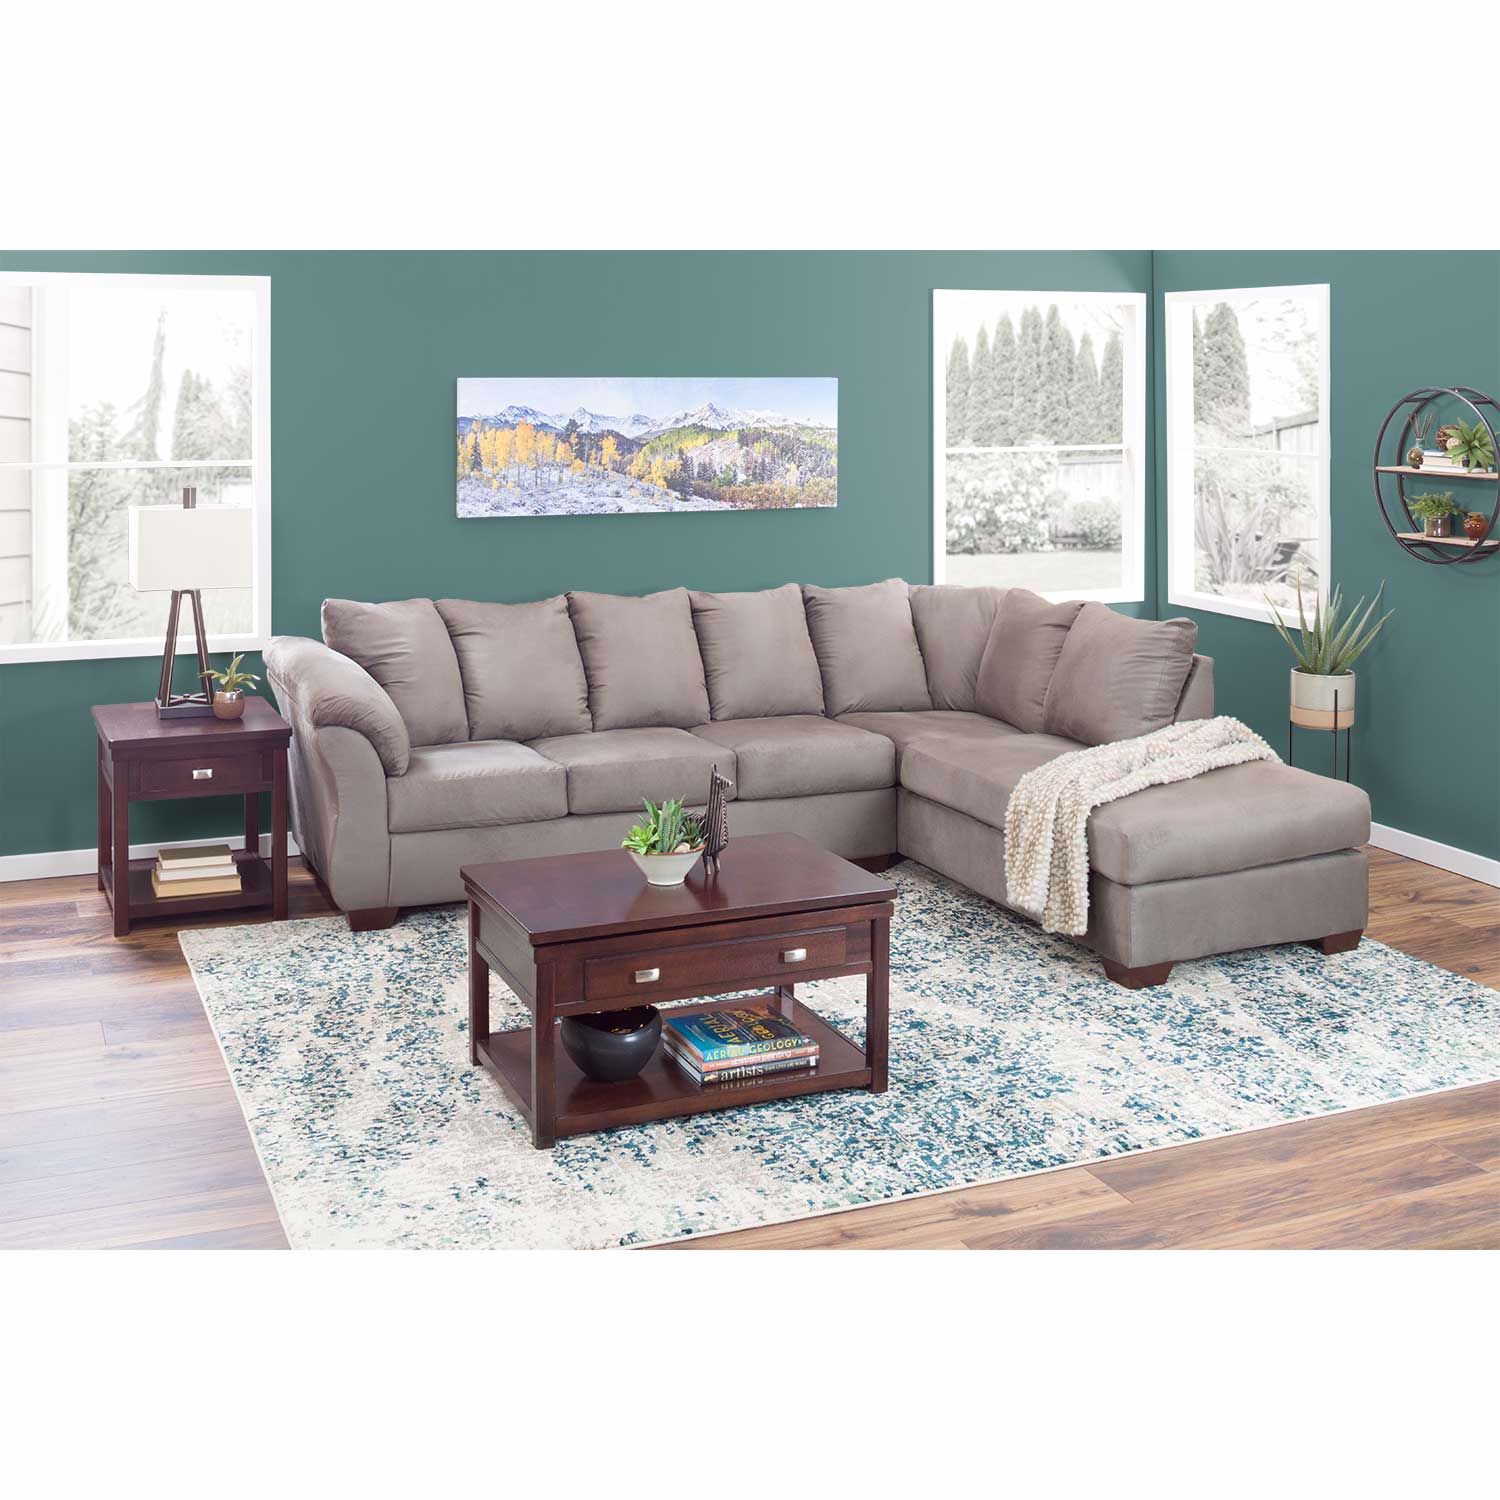 Picture of Darcy Cobblestone Gray 2 Piece Sectional w/ RAF Chaise